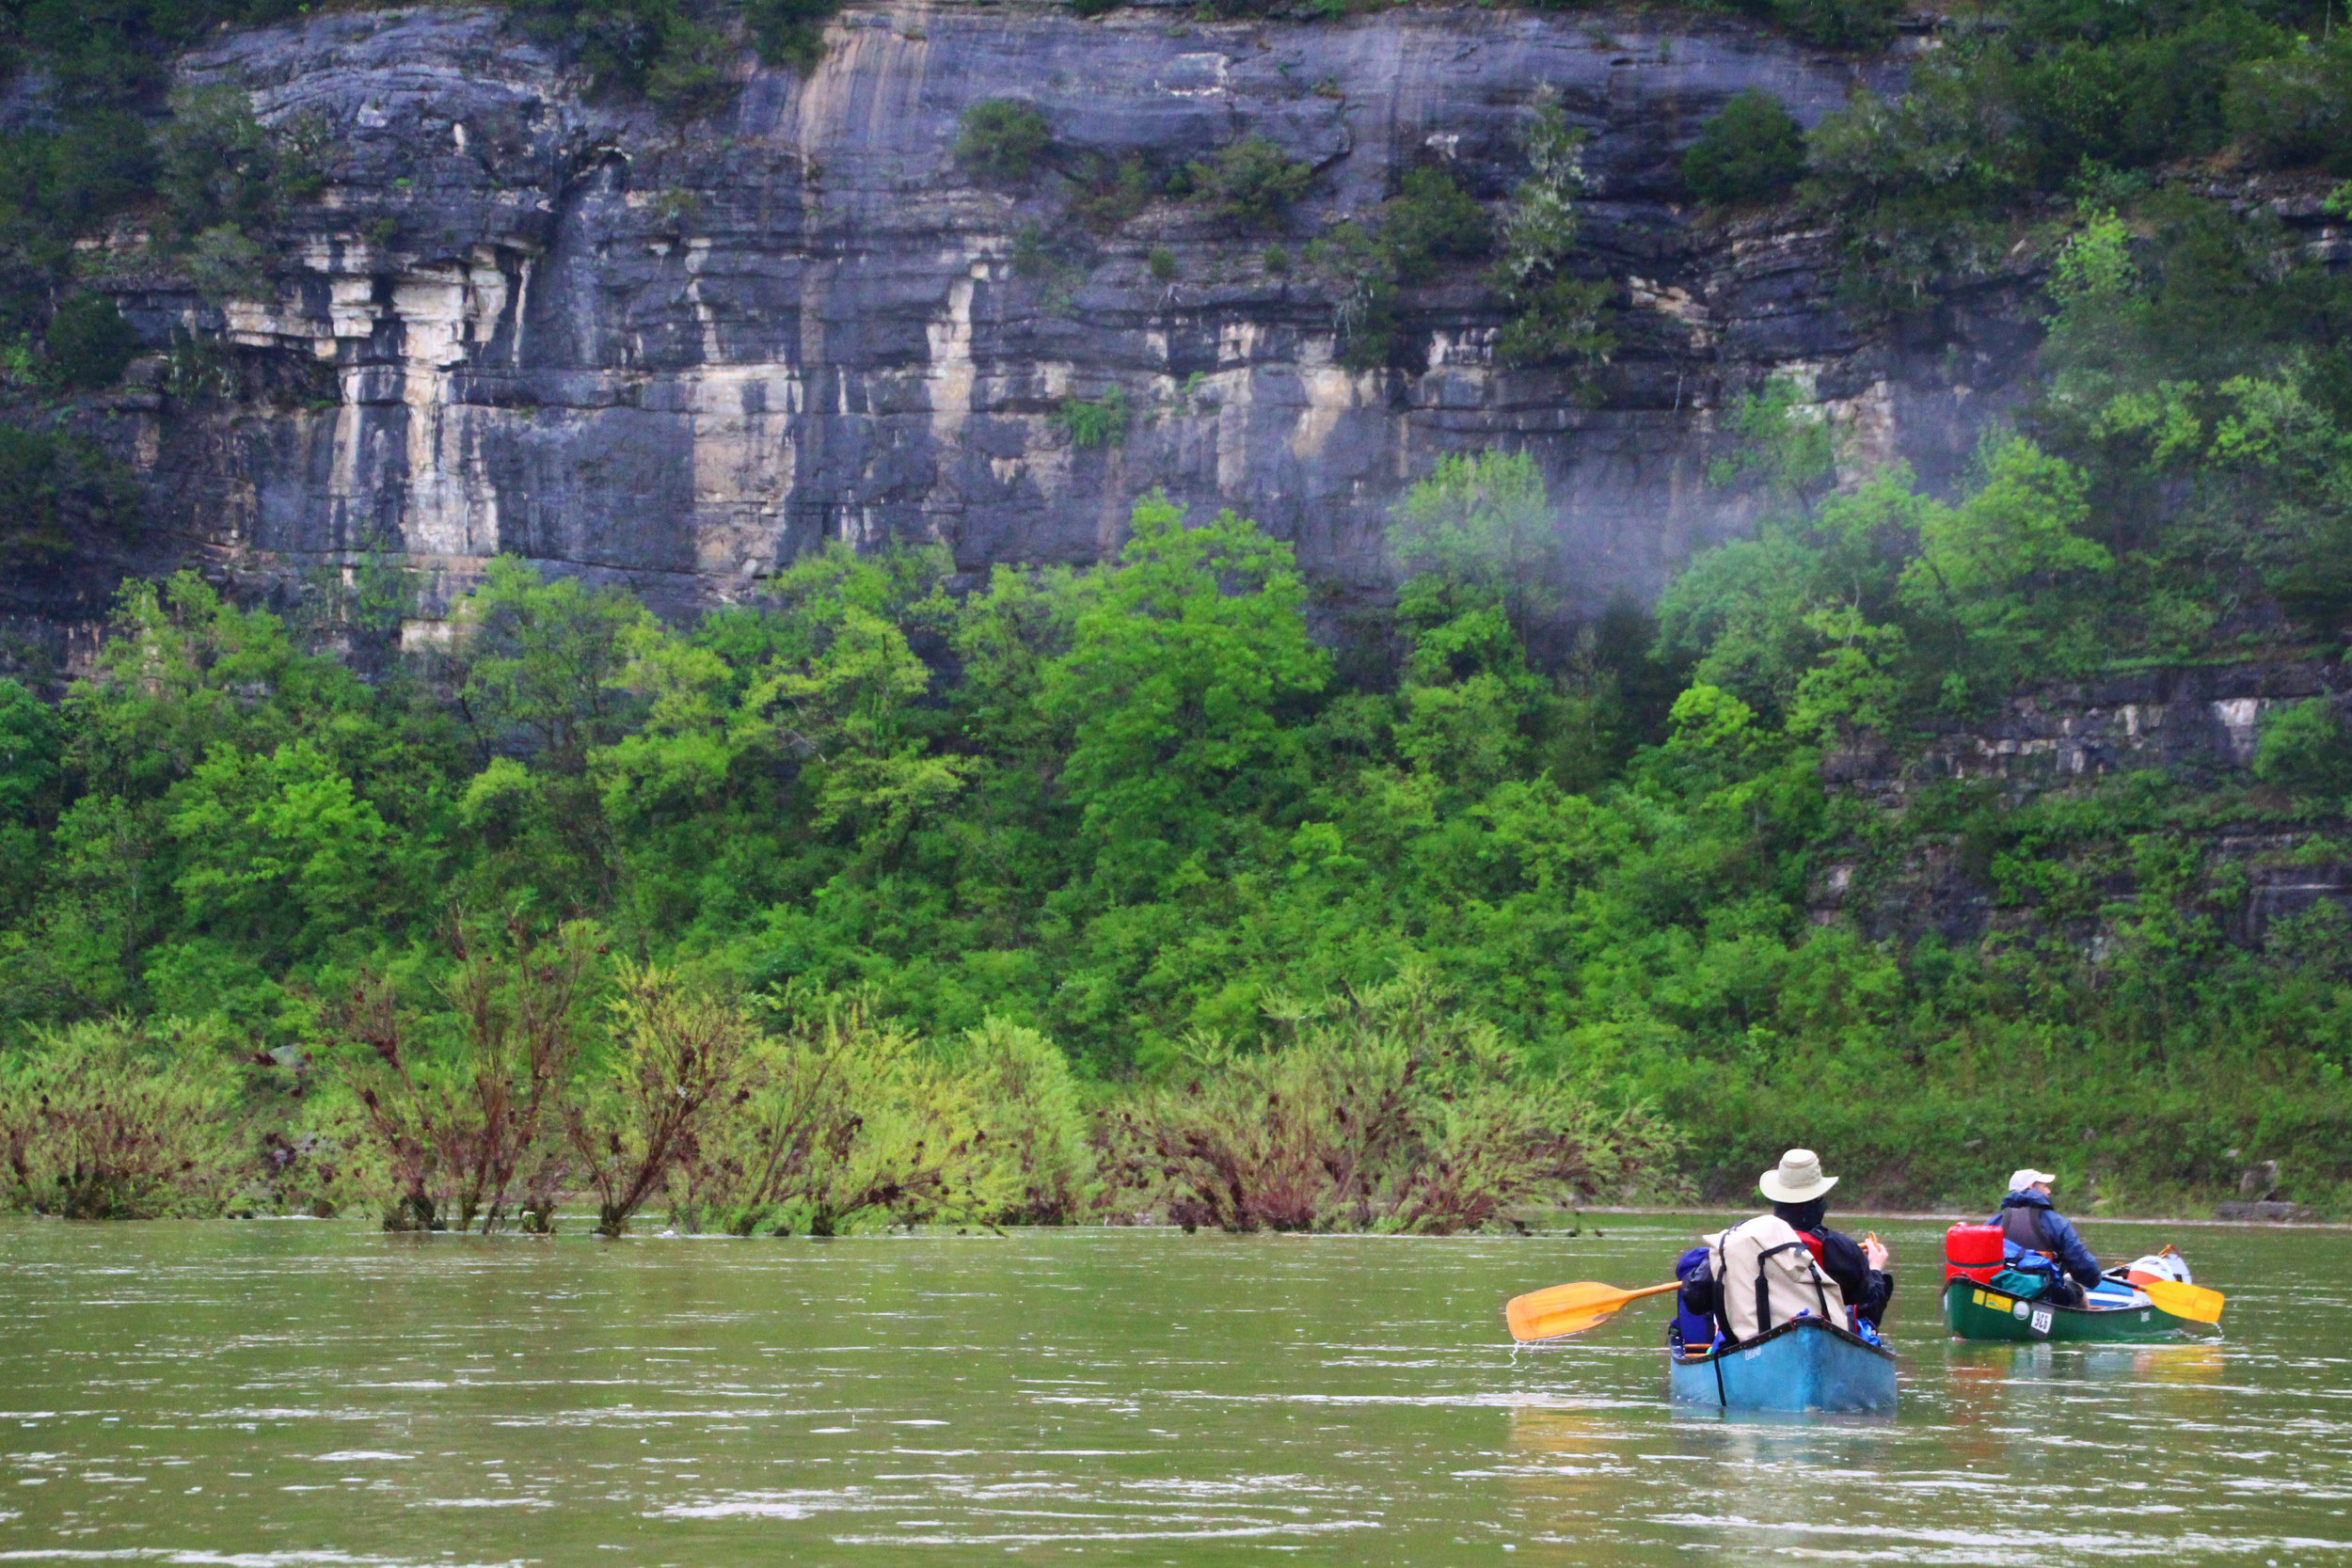 Bill Steelman (back) and Grant Nally (front) enjoying an up-close look at one of the many bluff walls bordering the Buffalo River.